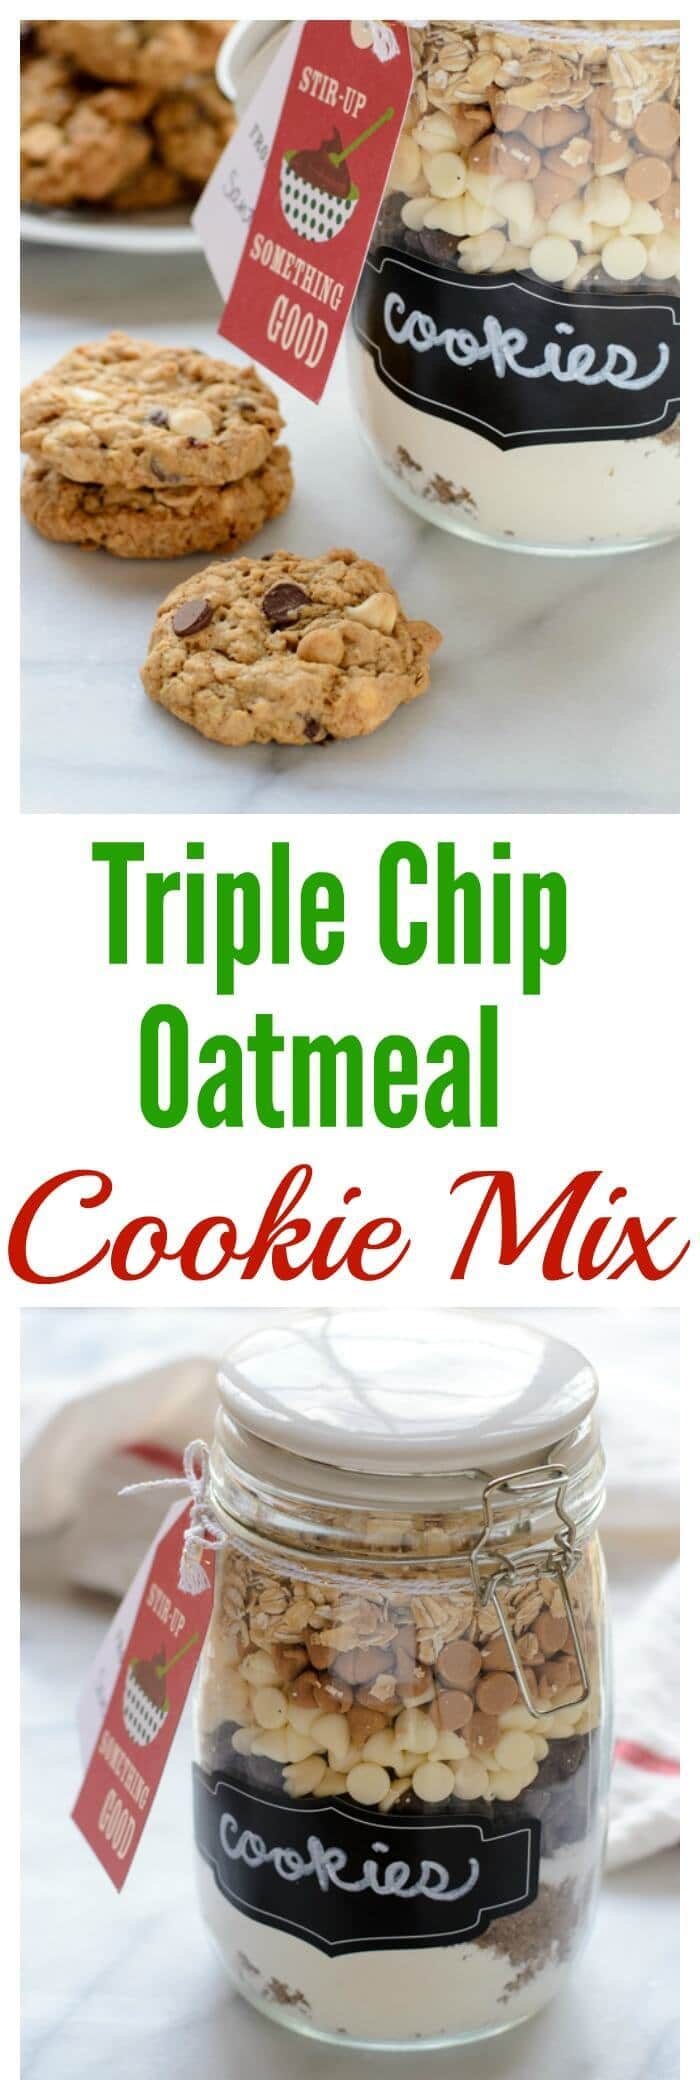 Triple Chip Oatmeal Cookie Mix